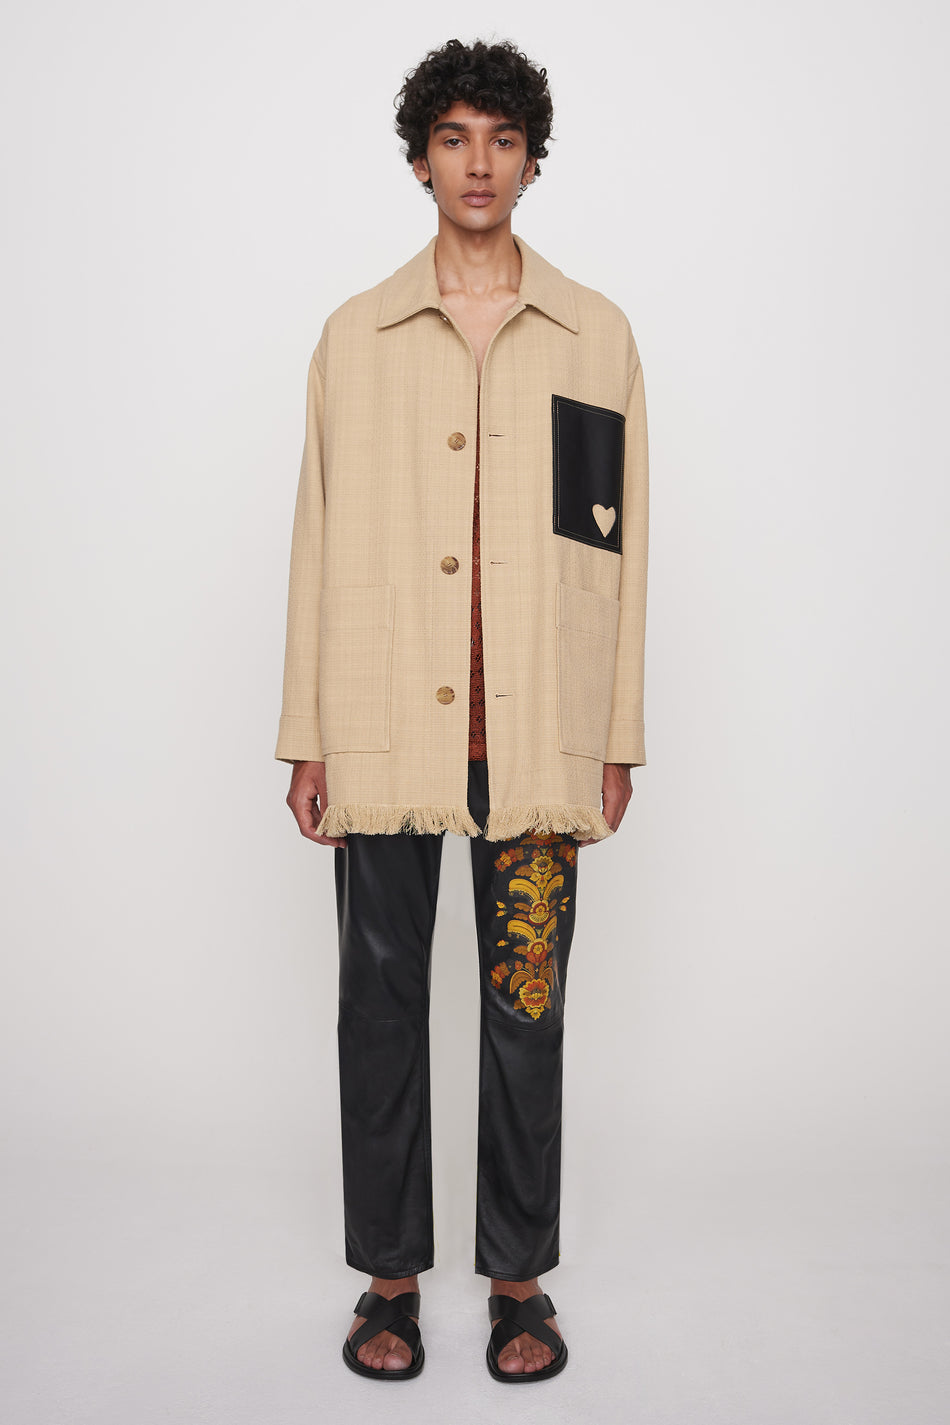 Carl painters jacket sand